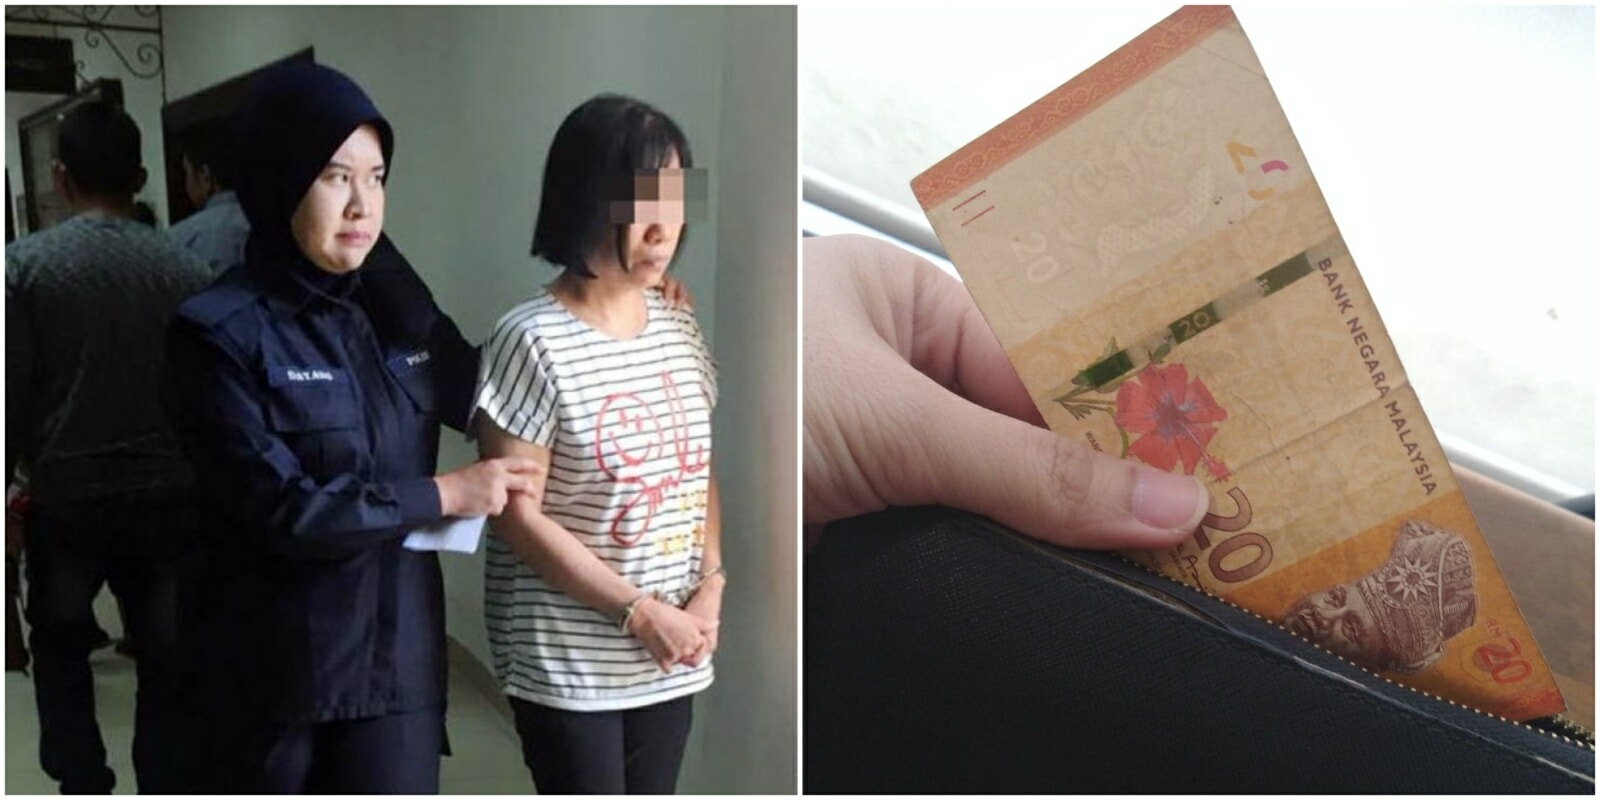 Kuching Woman May Be Jailed 20 Years for Using Fake RM20 Note, Netizens Say It's Unfair - WORLD OF BUZZ